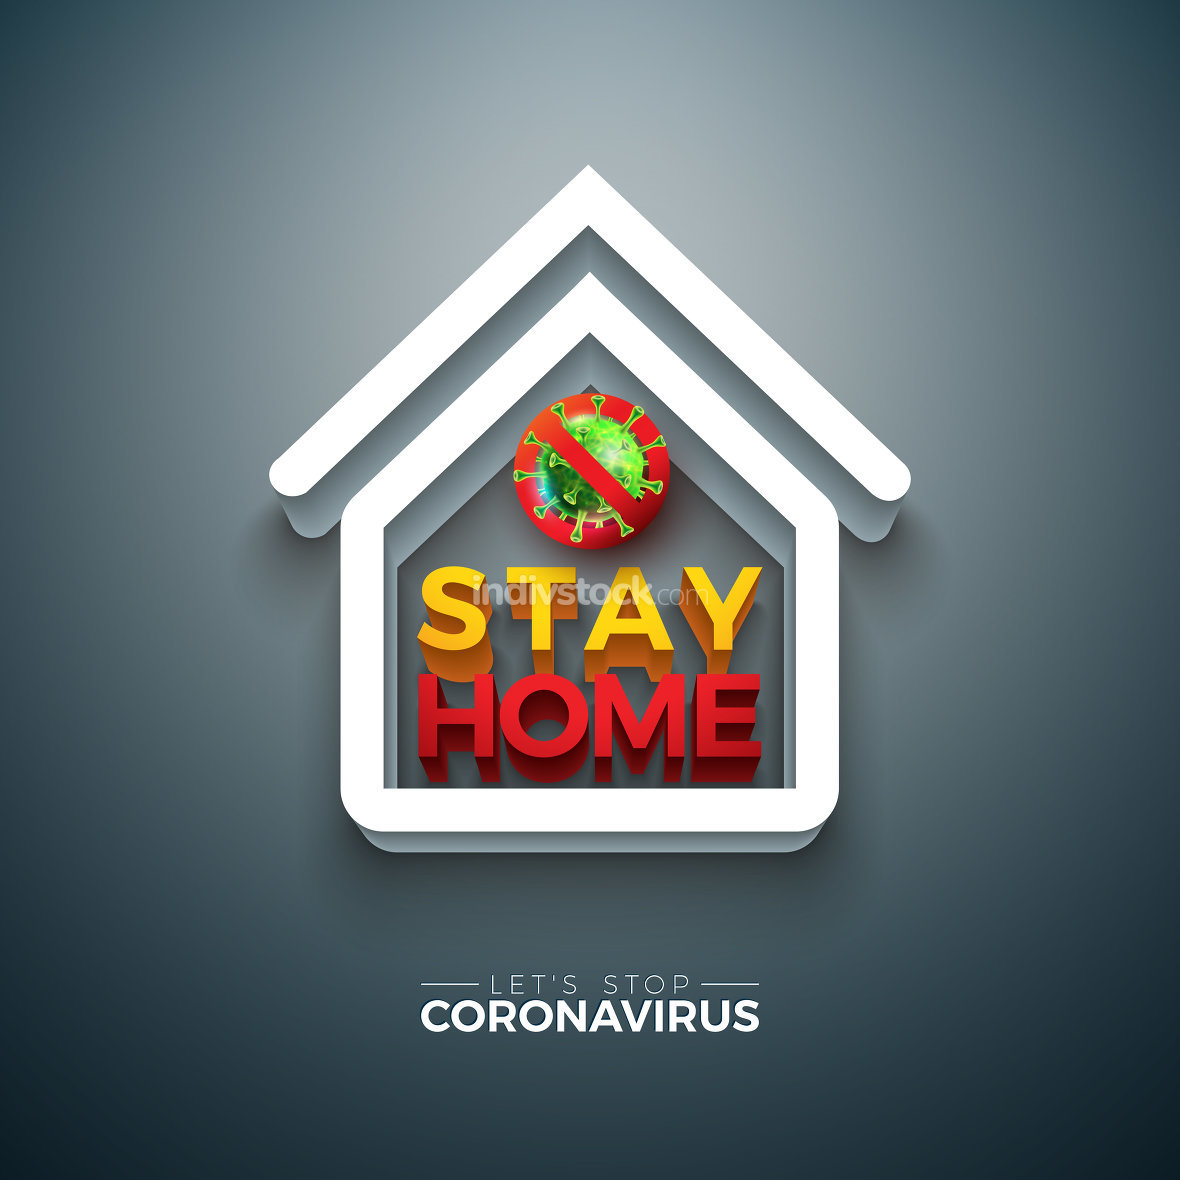 Stay Home. Stop Coronavirus Design with Covid-19 Virus and 3d House Symbol on Dark Background. Vector 2019-ncov Corona Virus Outbreak Illustration on Dangerous SARS Epidemic Theme for Banner.